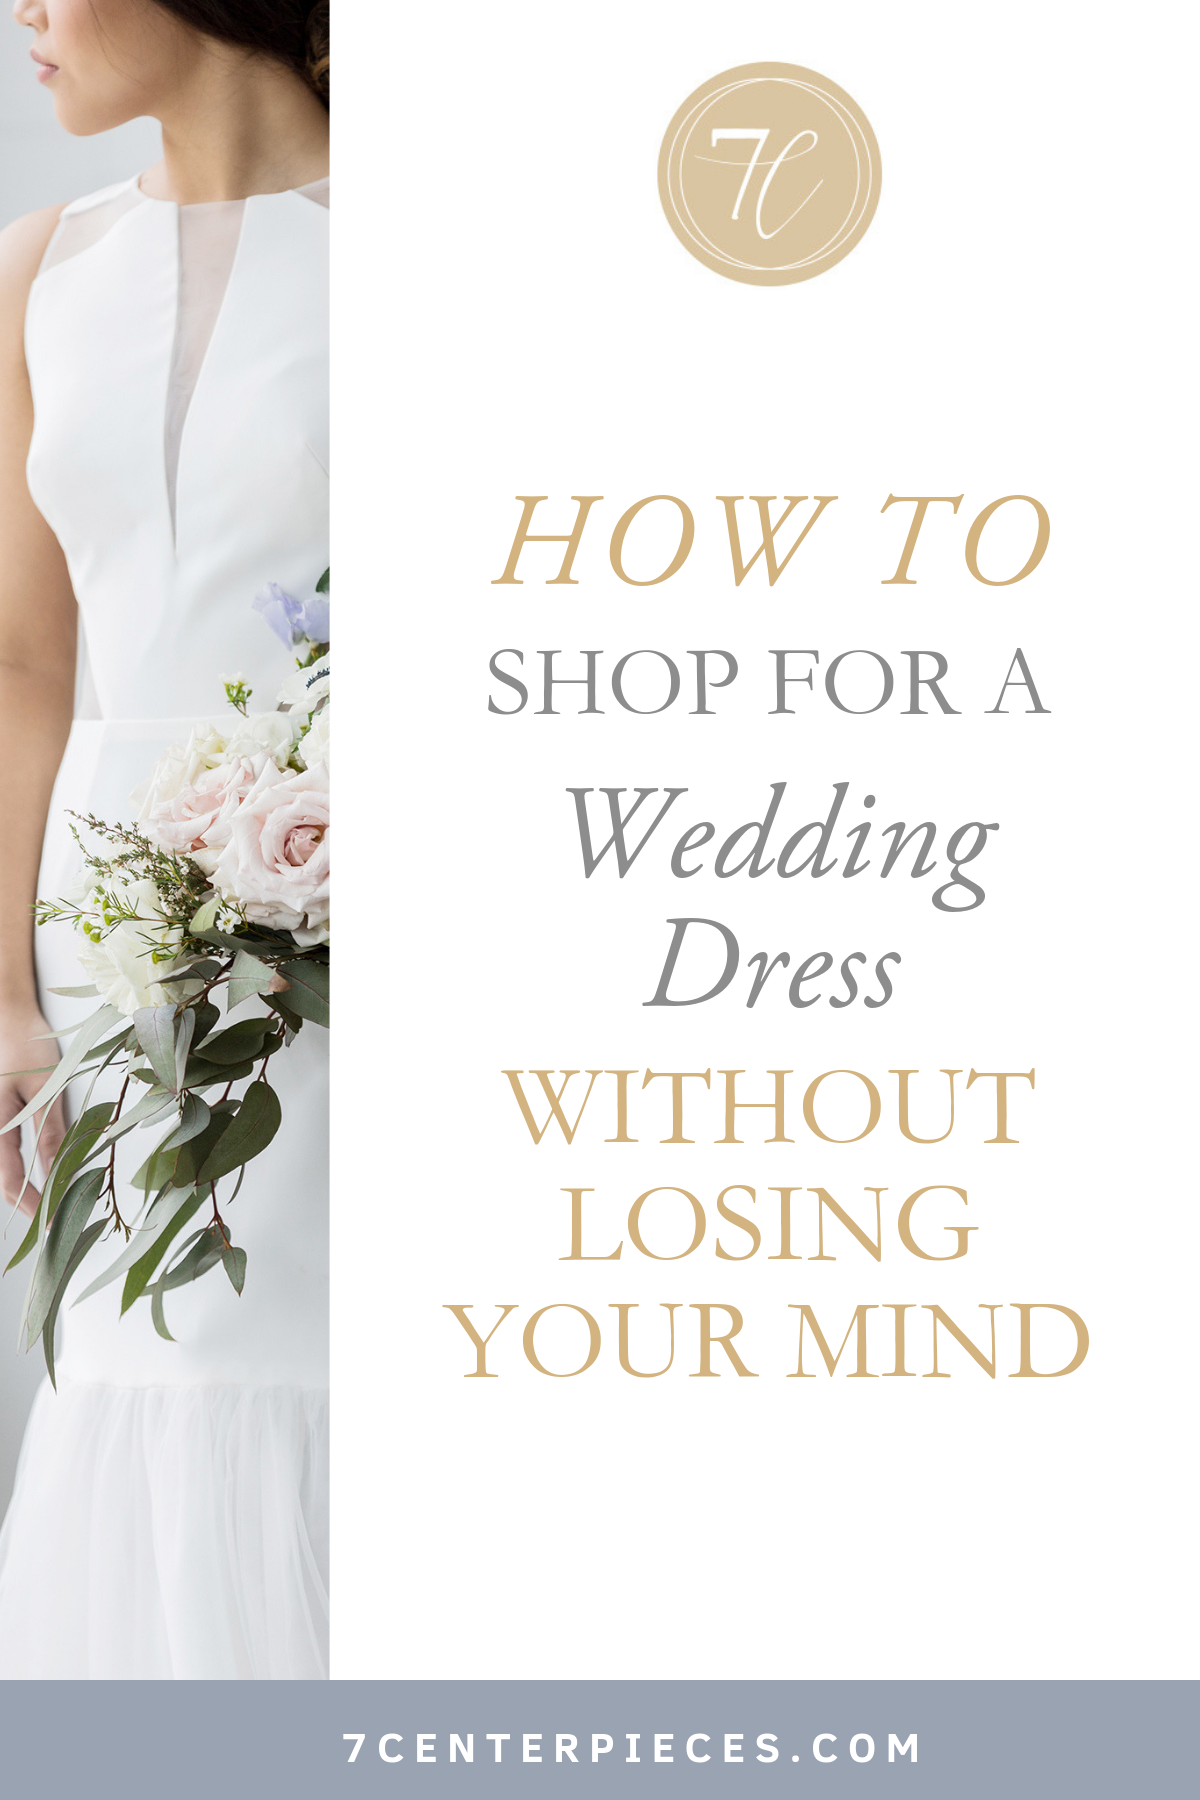 How to Shop for a Wedding Dress without Losing Your Mind